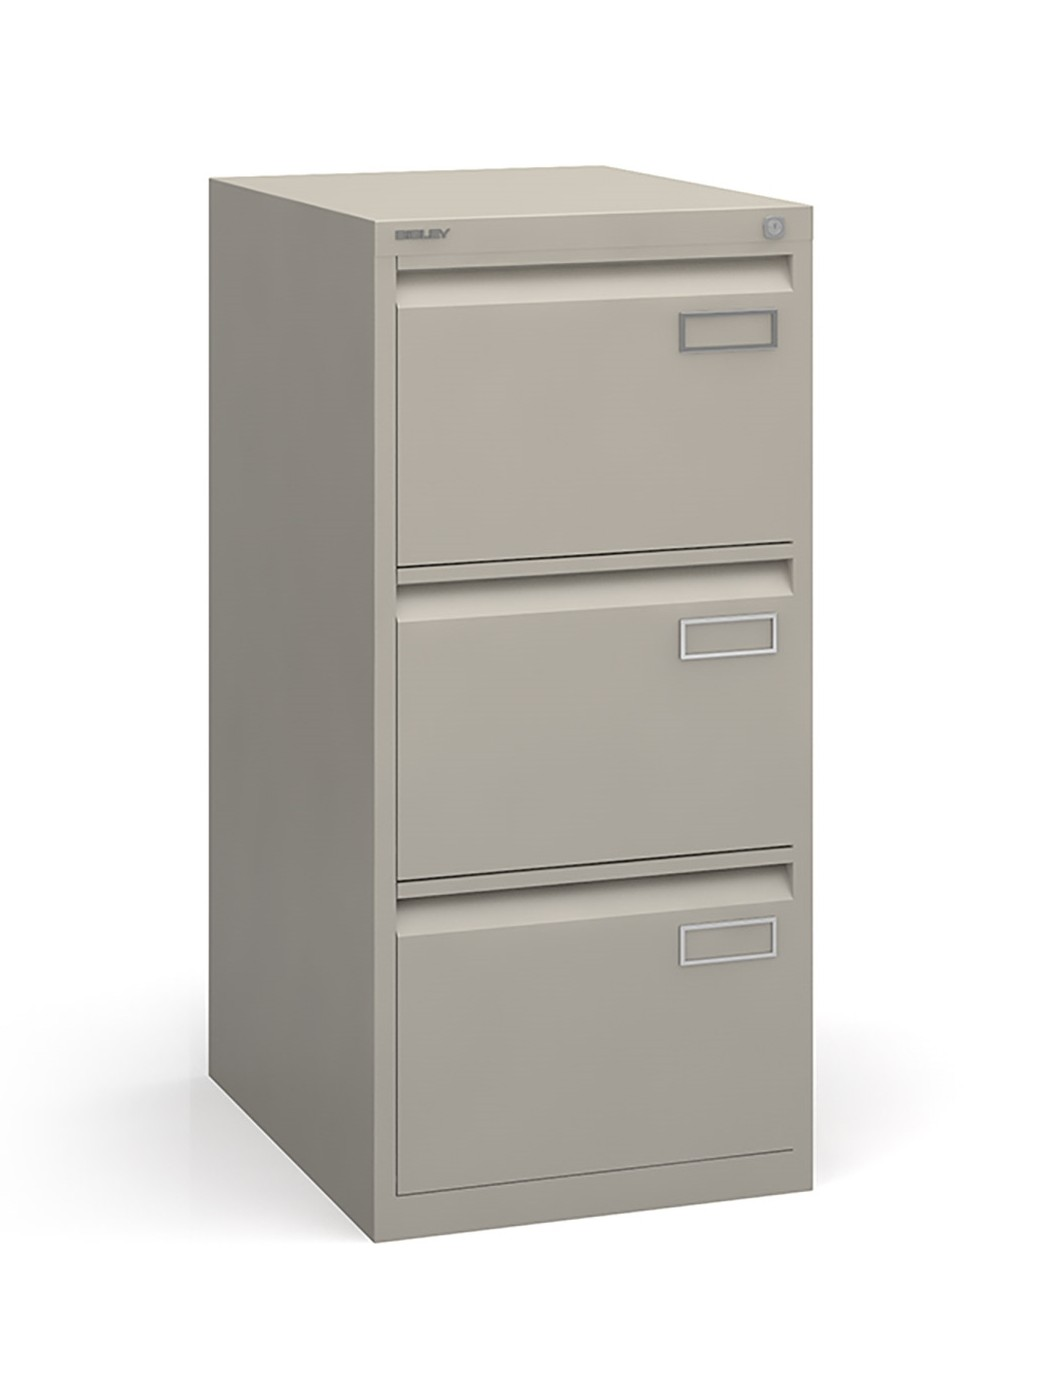 rails best lock basyx foolscap cabinet hon series cabinets ac filing office dimensions drawer hang file storage x inside vertical chair replacement lateral bisley